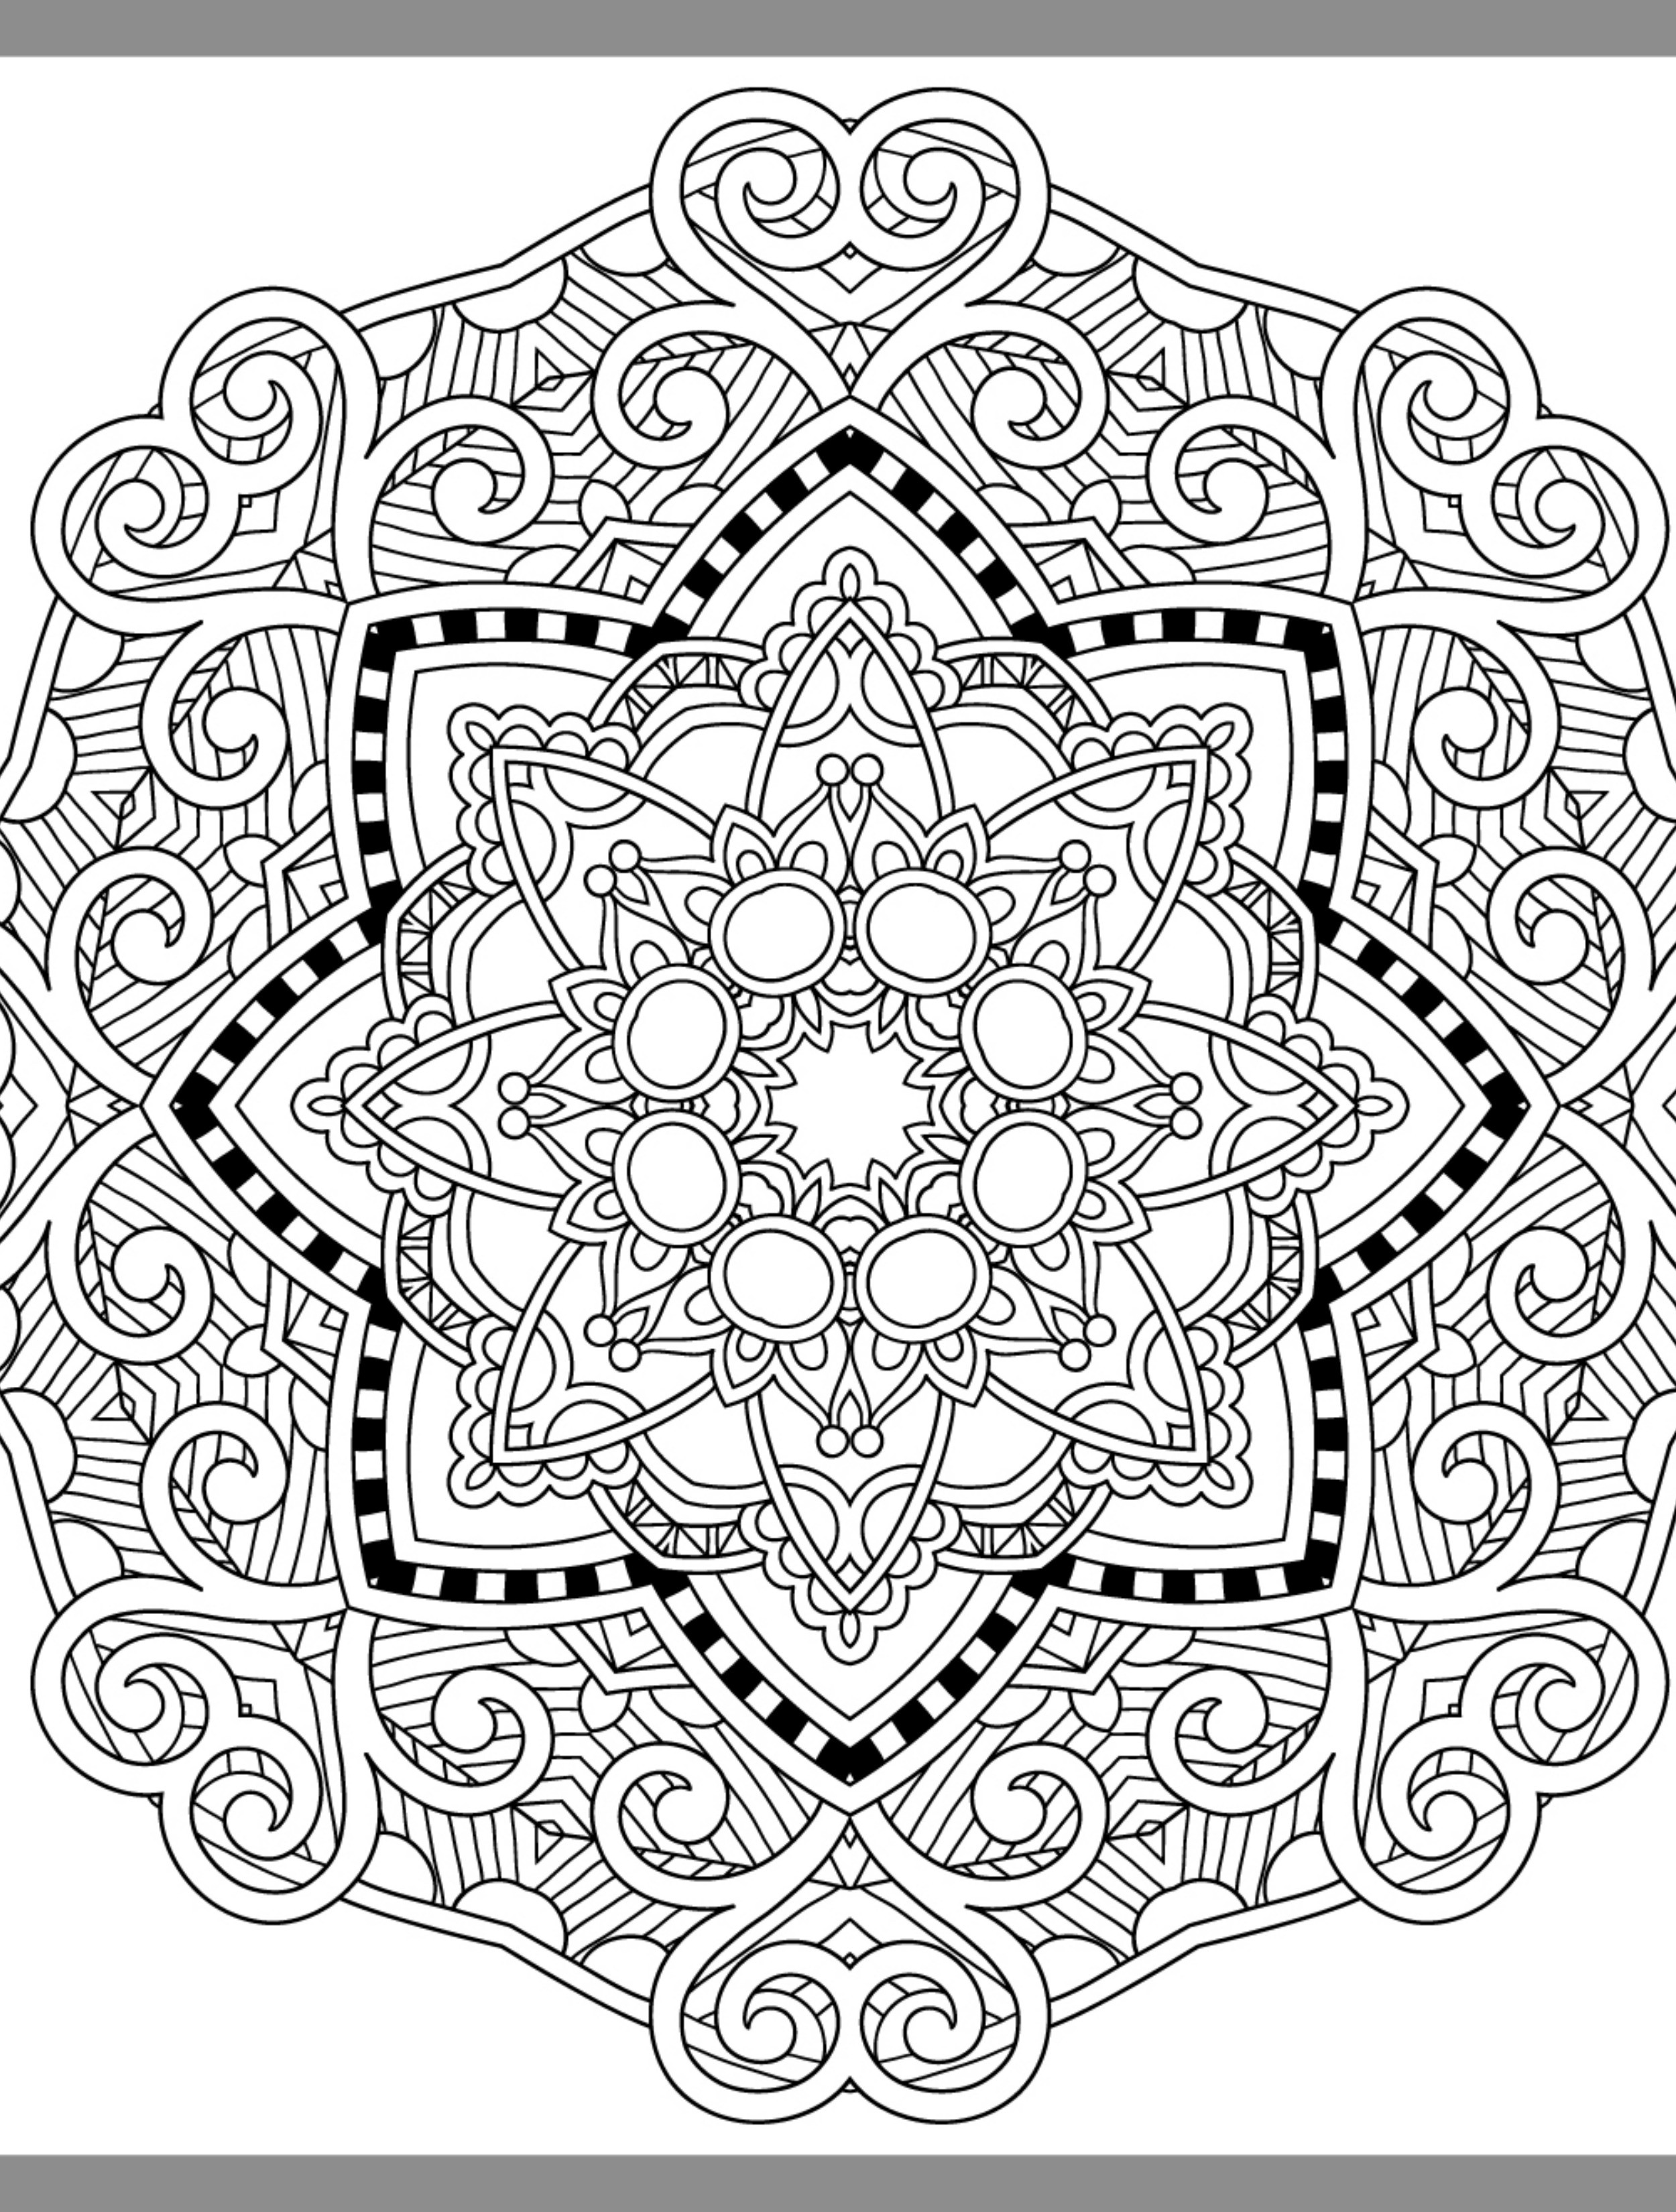 Best ideas about Pretty Coloring Pages For Adults . Save or Pin 24 More Free Printable Adult Coloring Pages Page 3 of 25 Now.